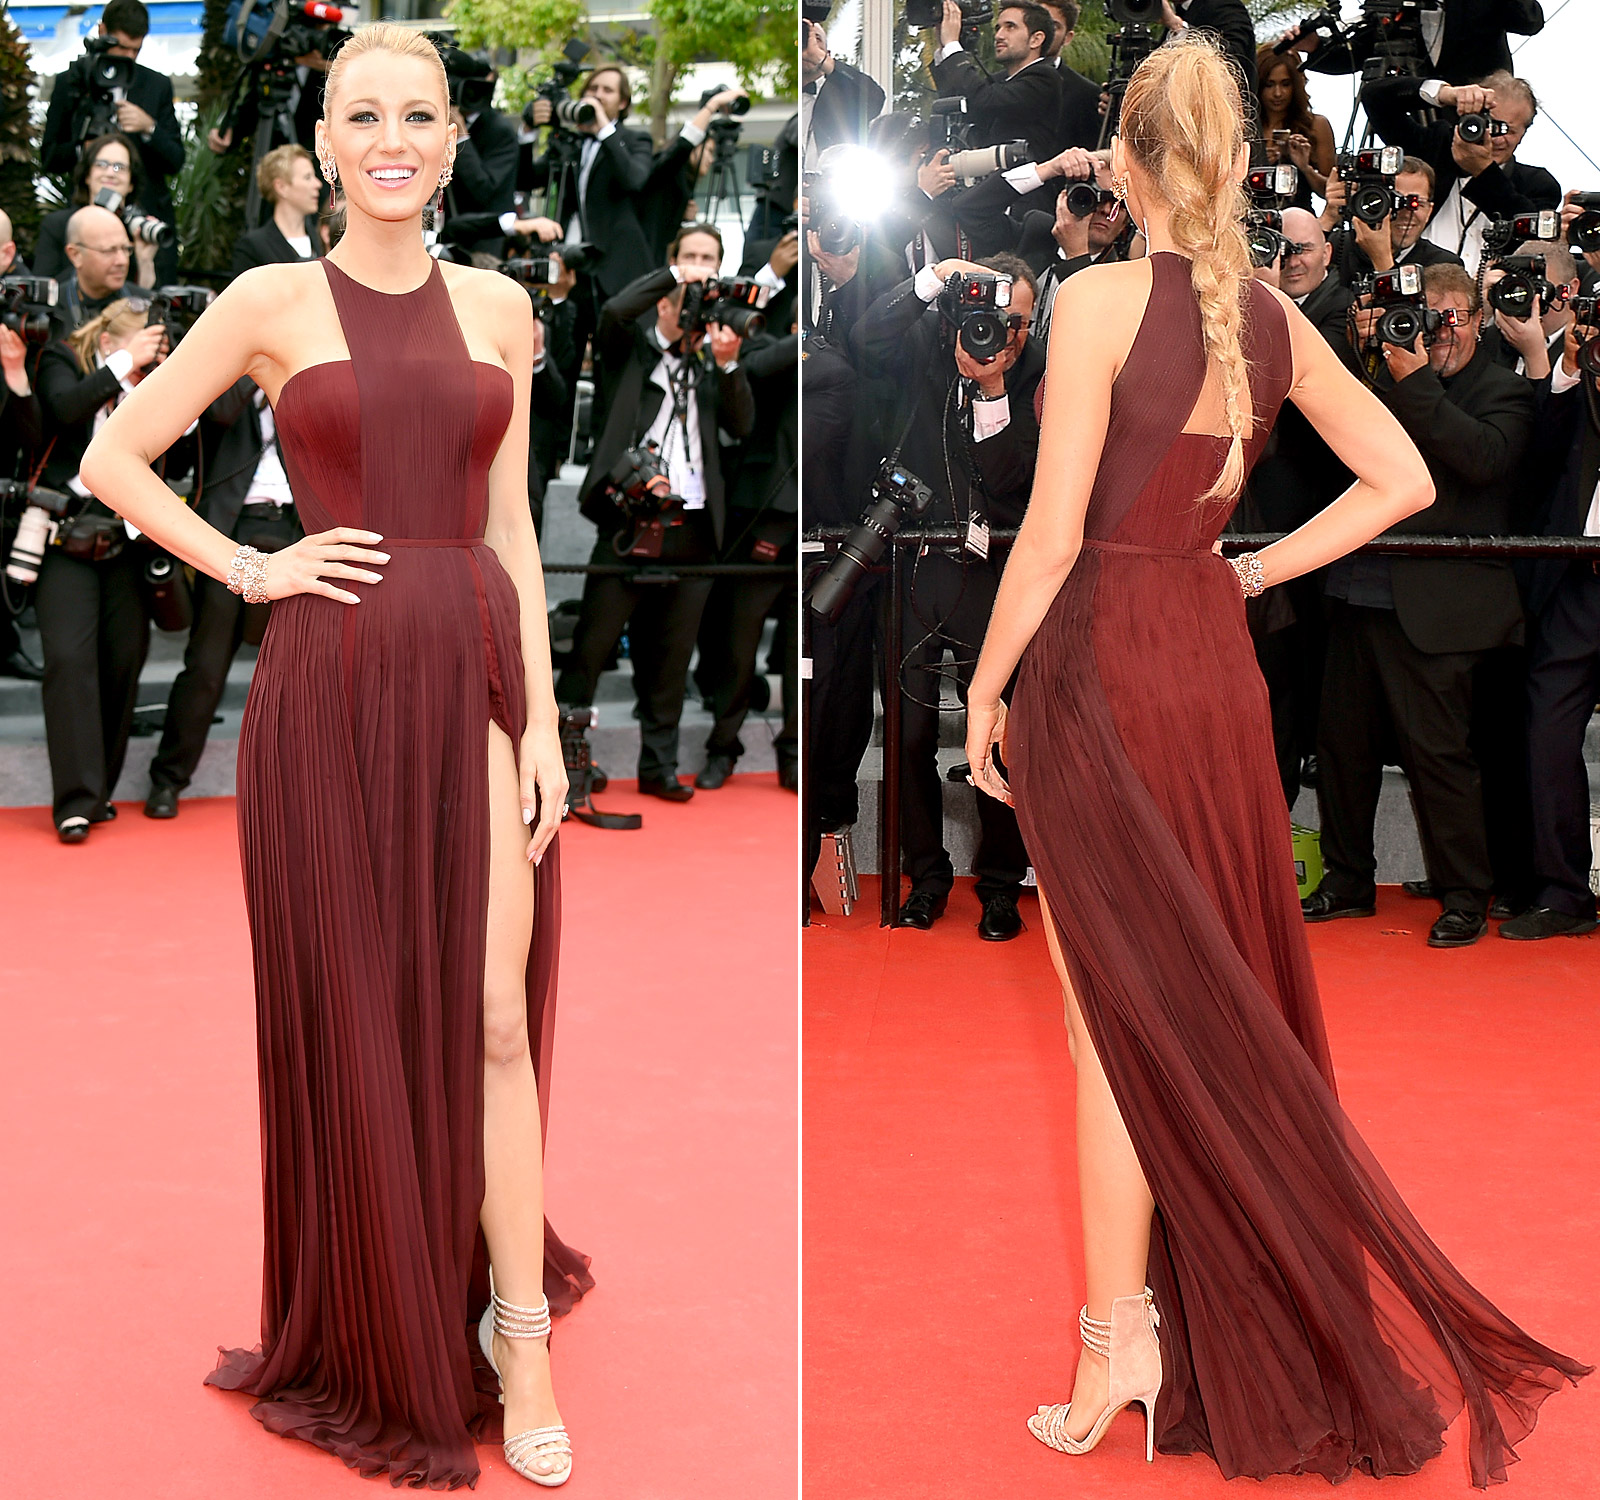 Blake Lively Cannes 2014 Celebrity Inspired Dresses, Red Carpet ...